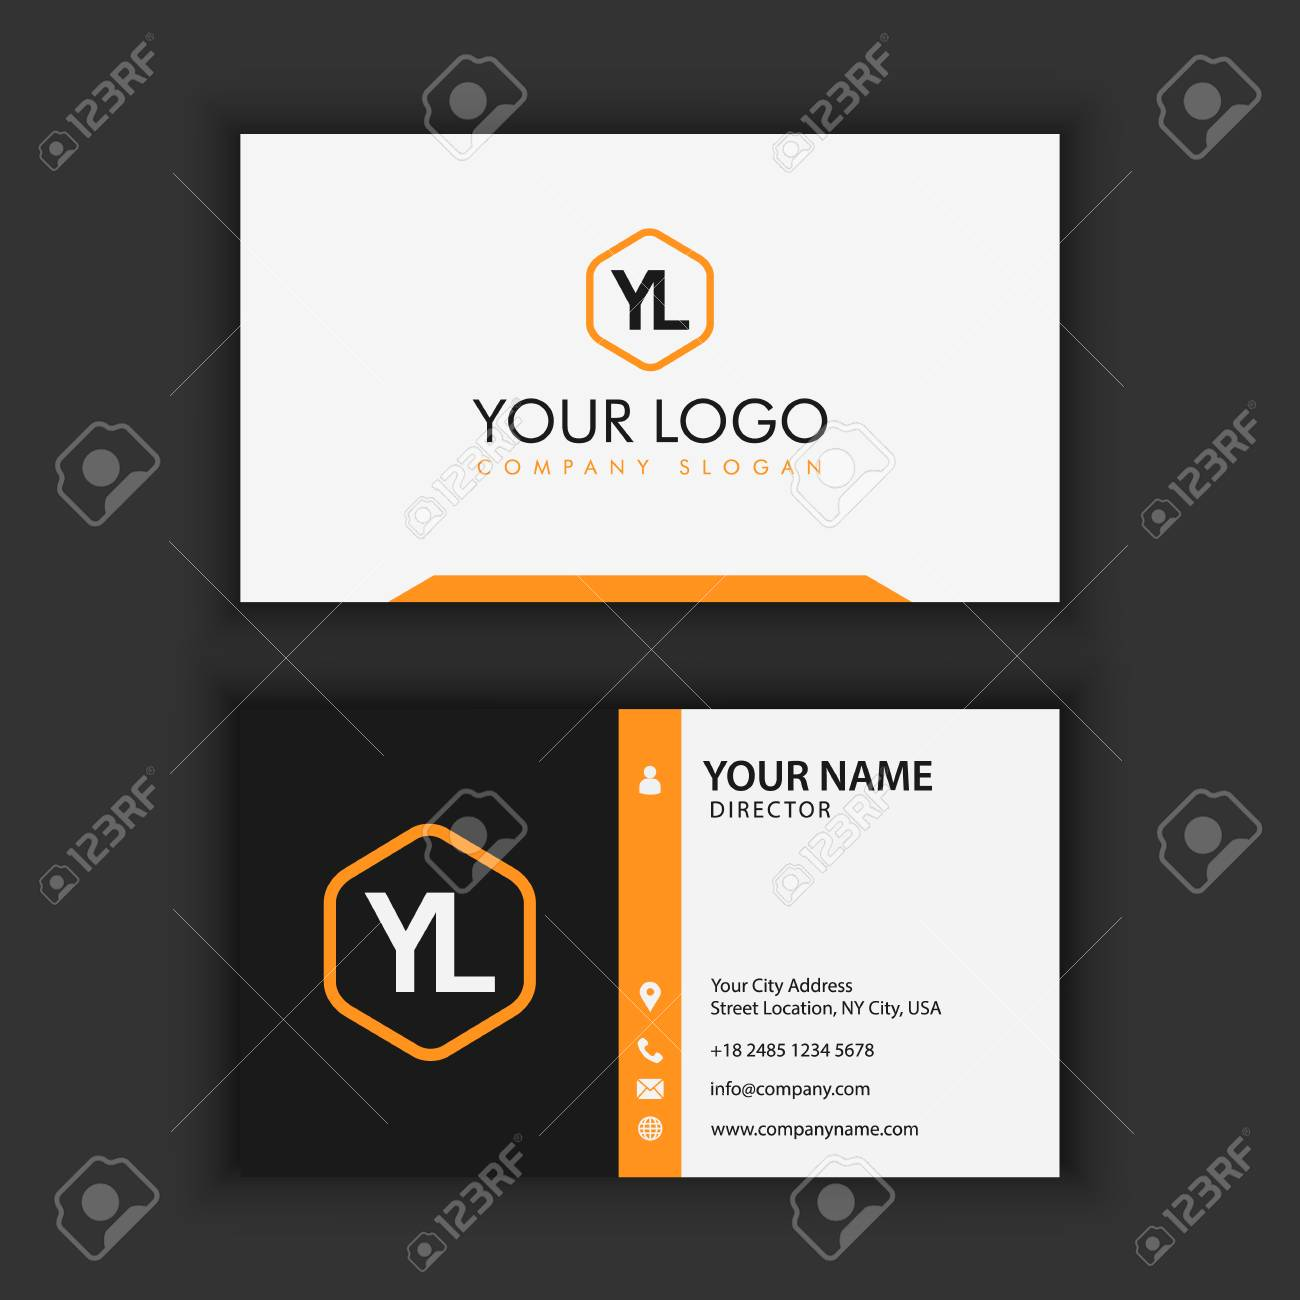 Modern Creative and Clean Business Card Template with orange black color - 87925614